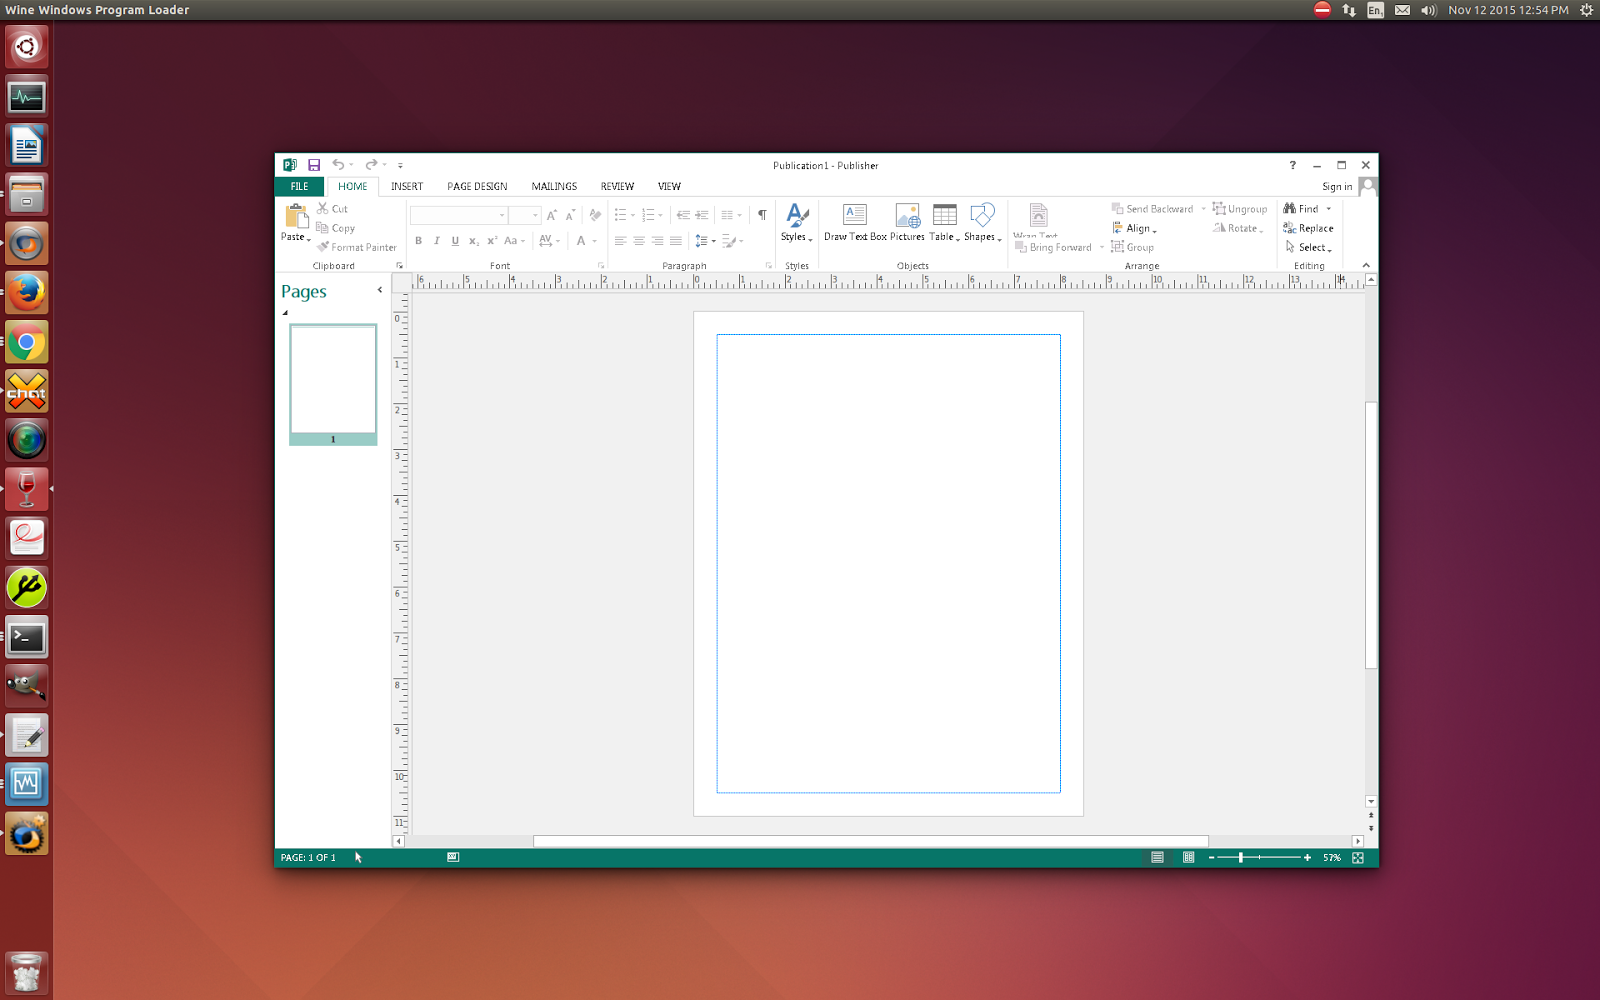 Wine Reviews : Microsoft Office 2013 on Linux with